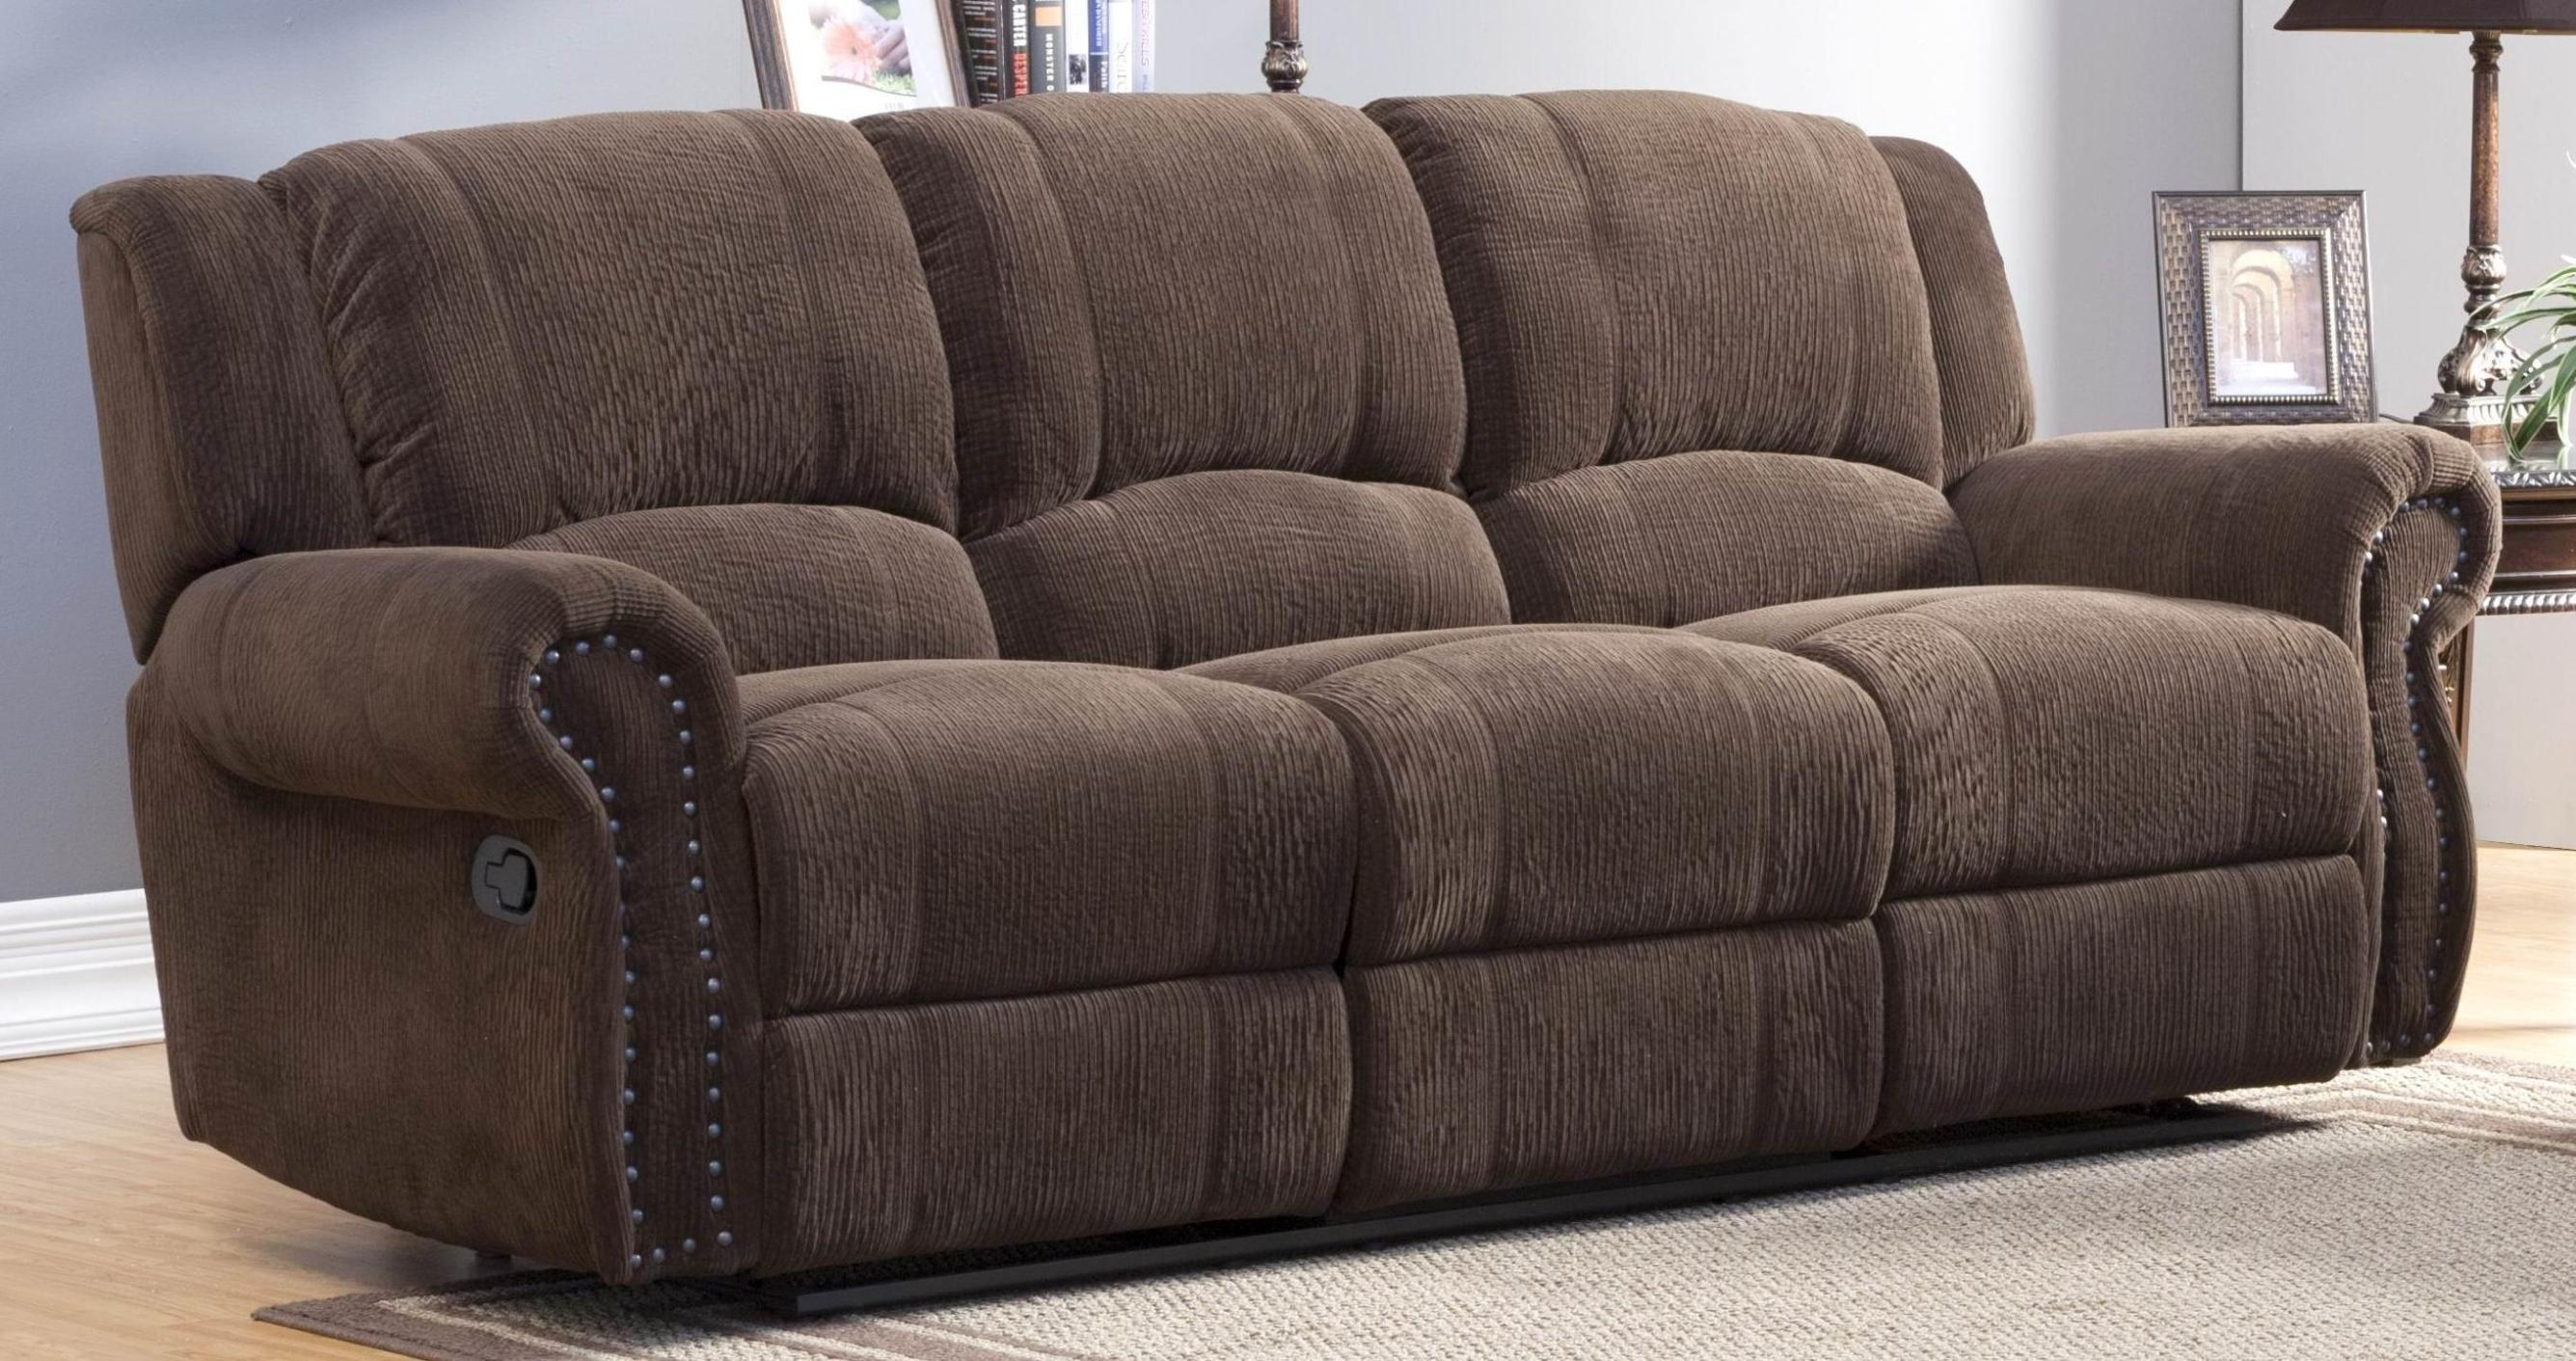 Curved Sofa Furniture Reviews: Curved Sectional Sofa Canada In Individual Piece Sectional Sofas (View 6 of 20)